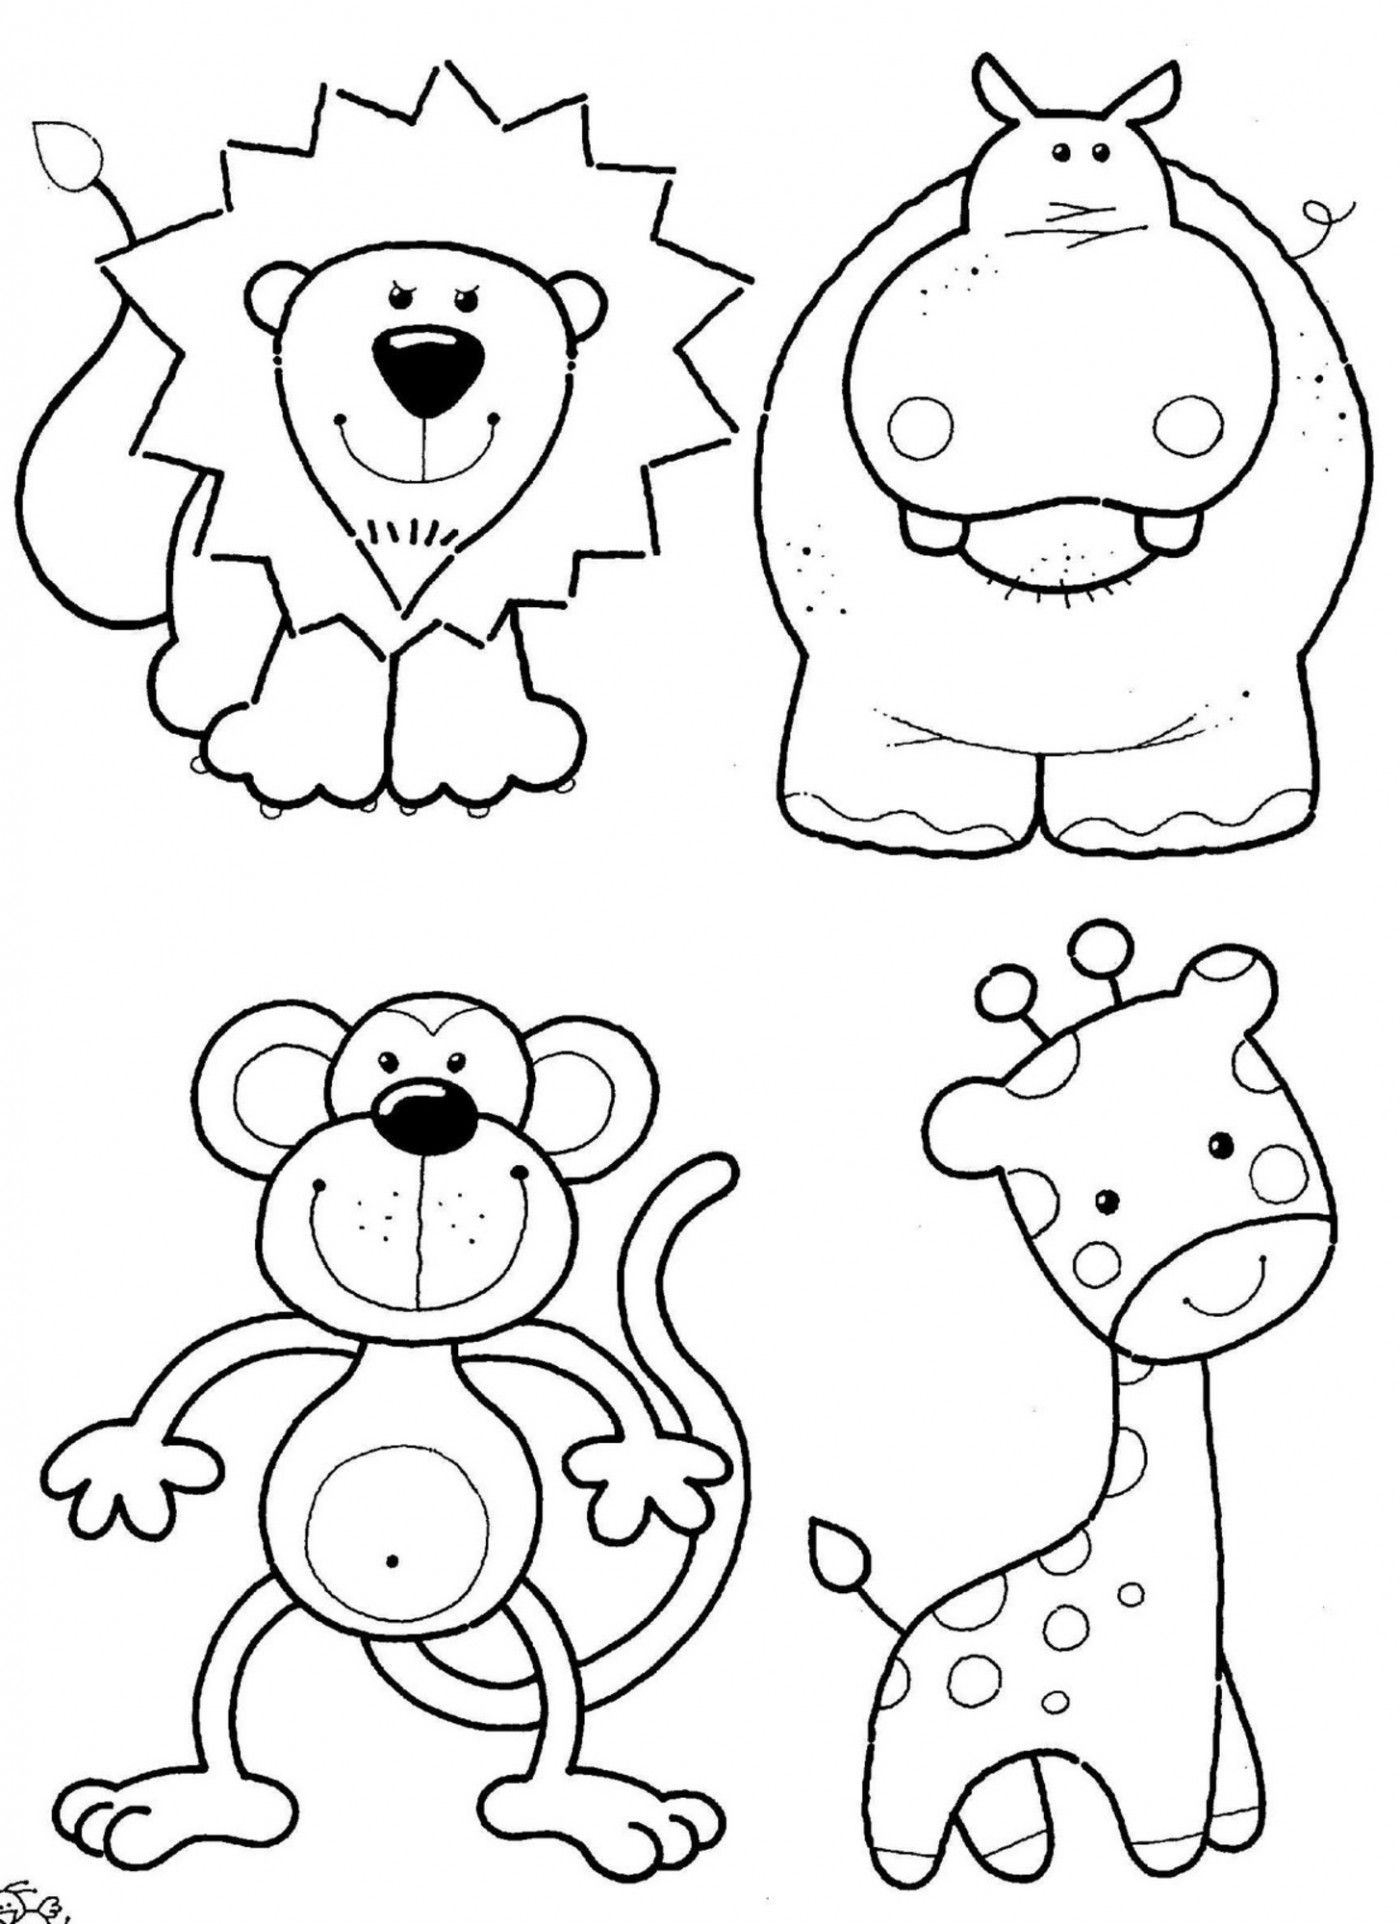 zoo animal coloring pages for preschool we love being moms a z zoo animal coloring pages pages animal zoo preschool for coloring